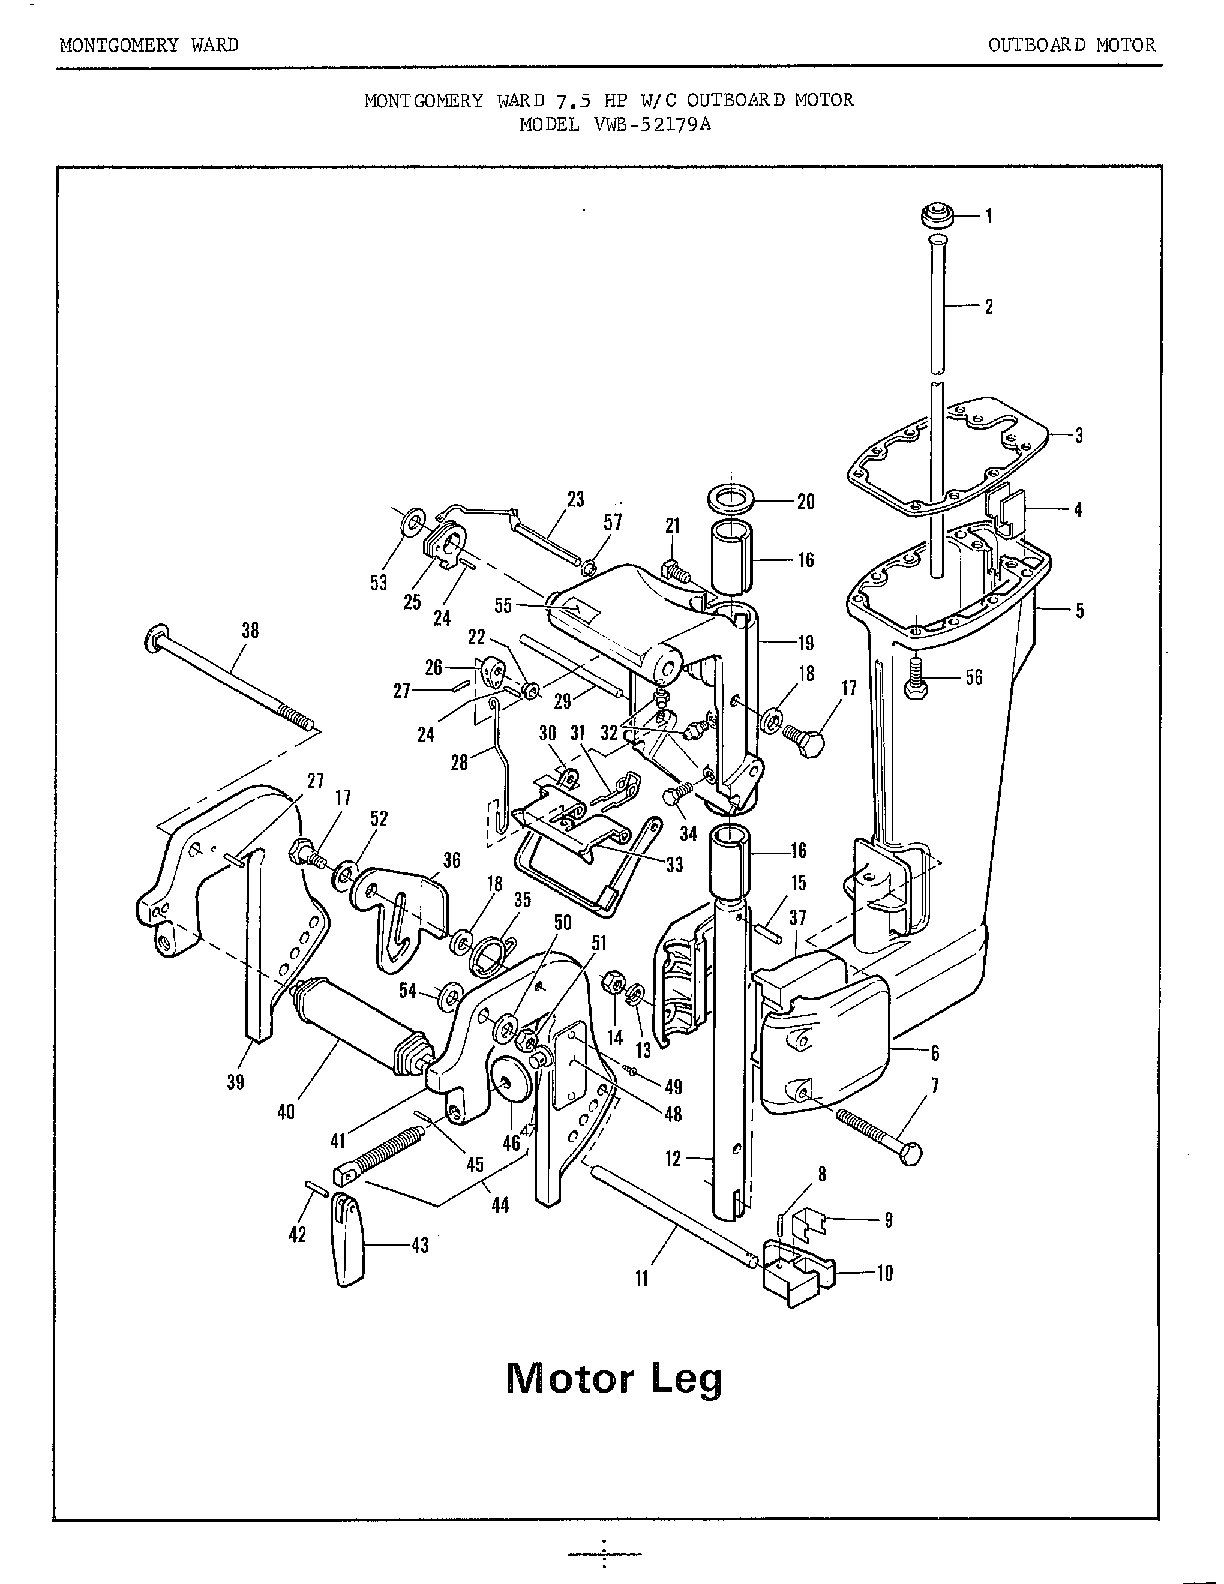 MERCURY OUTBOARD MANUAL PDF DOWNLOAD